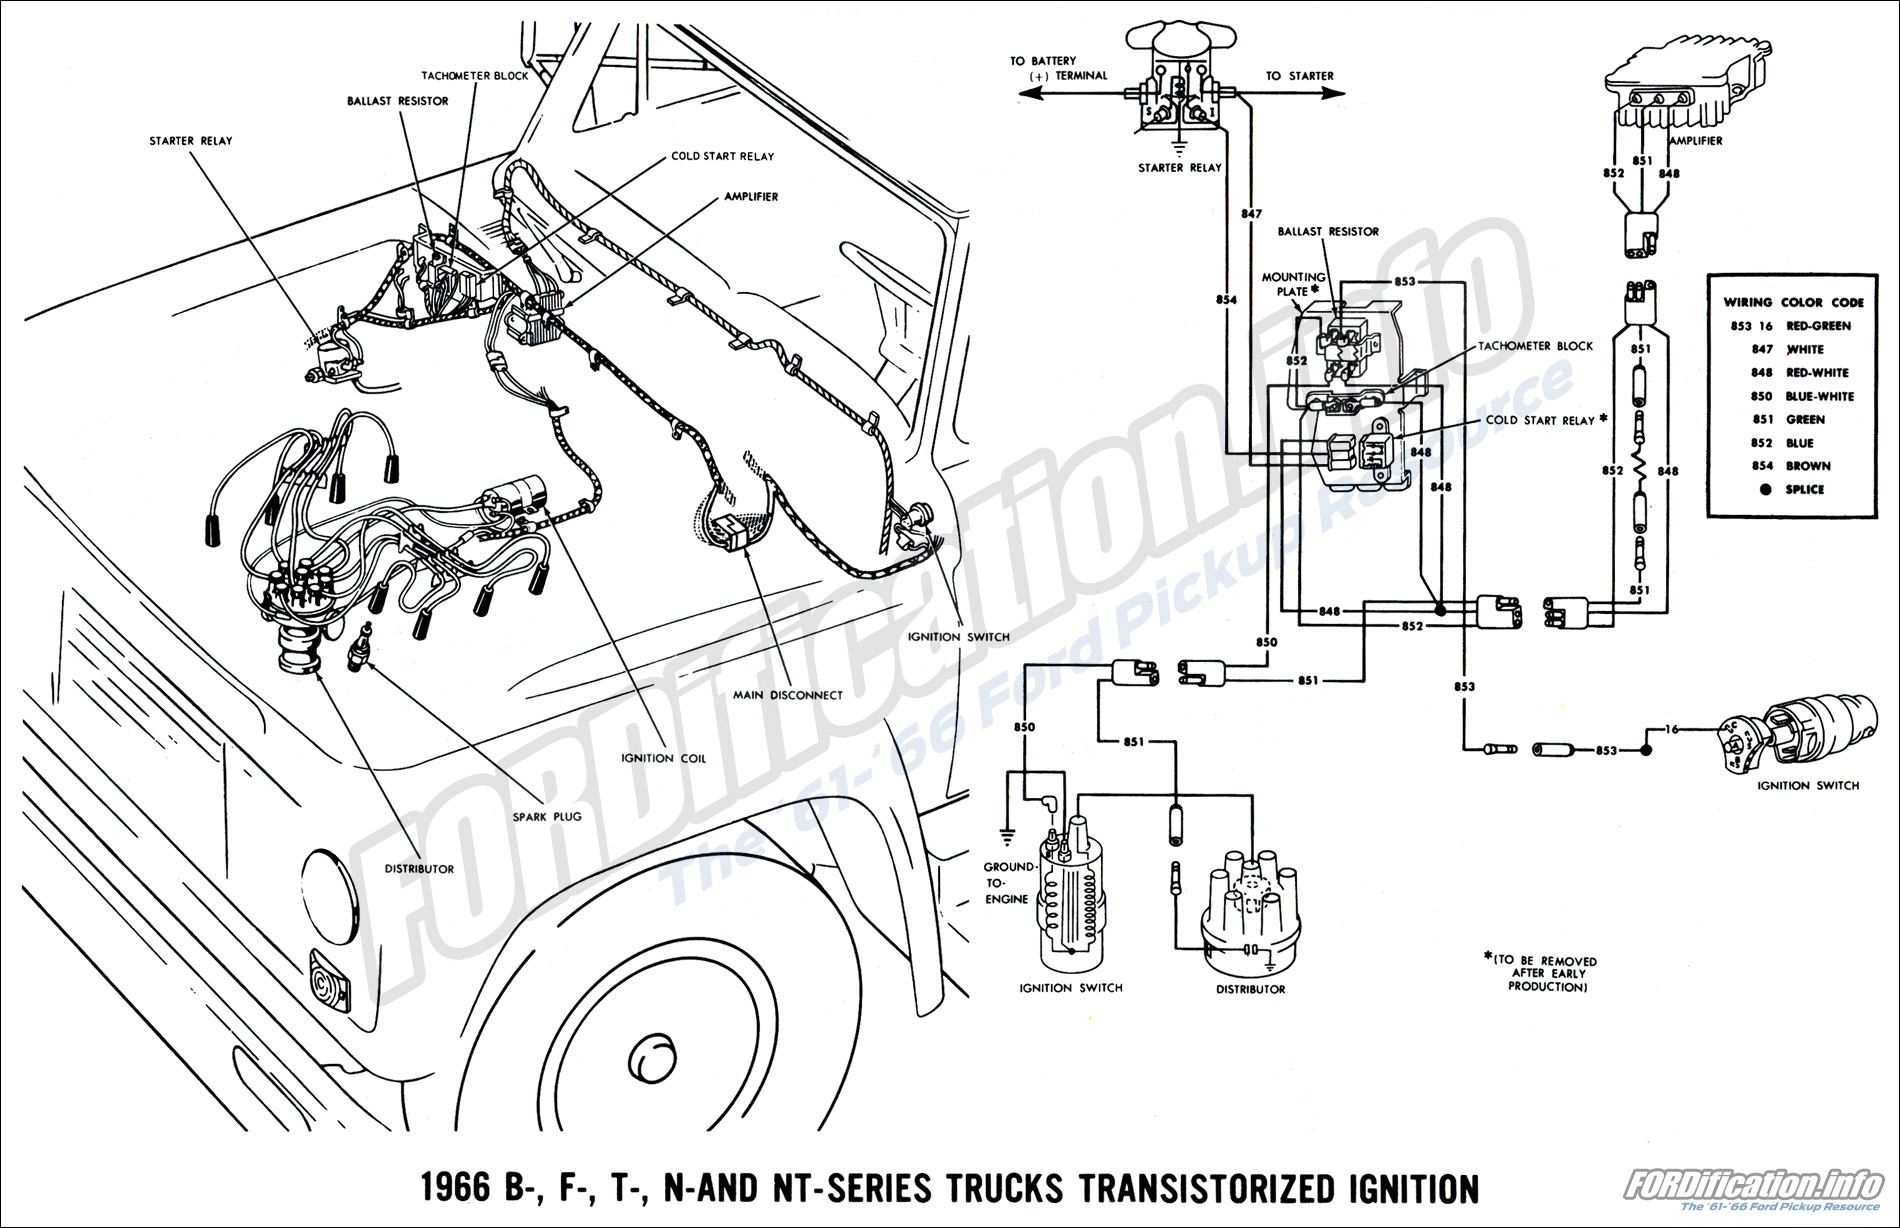 66transistorizedignition 1966 ford truck wiring diagrams fordification info the '61 '66 1966 ford truck wiring diagram at eliteediting.co